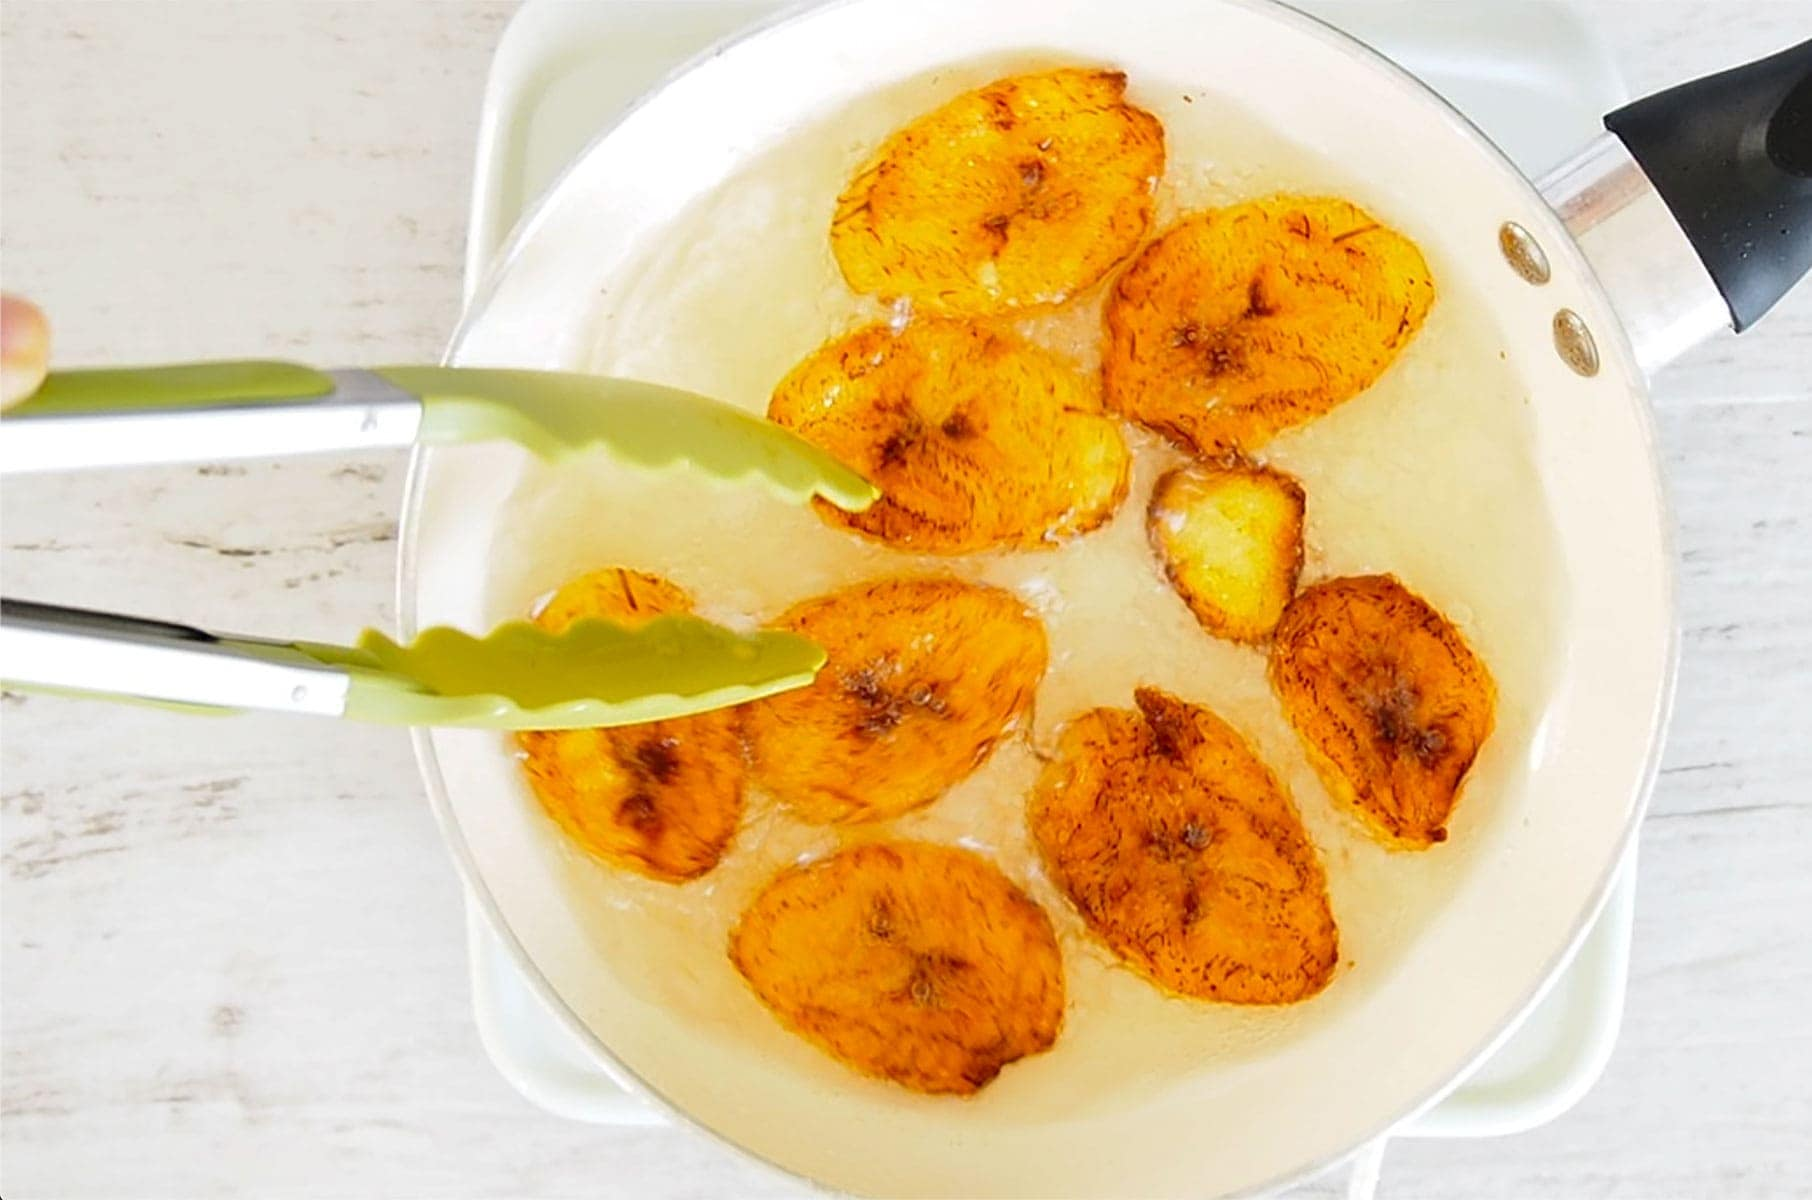 Fritos Maduros Recipe And Video Of The Best Fried Ripe Plantains